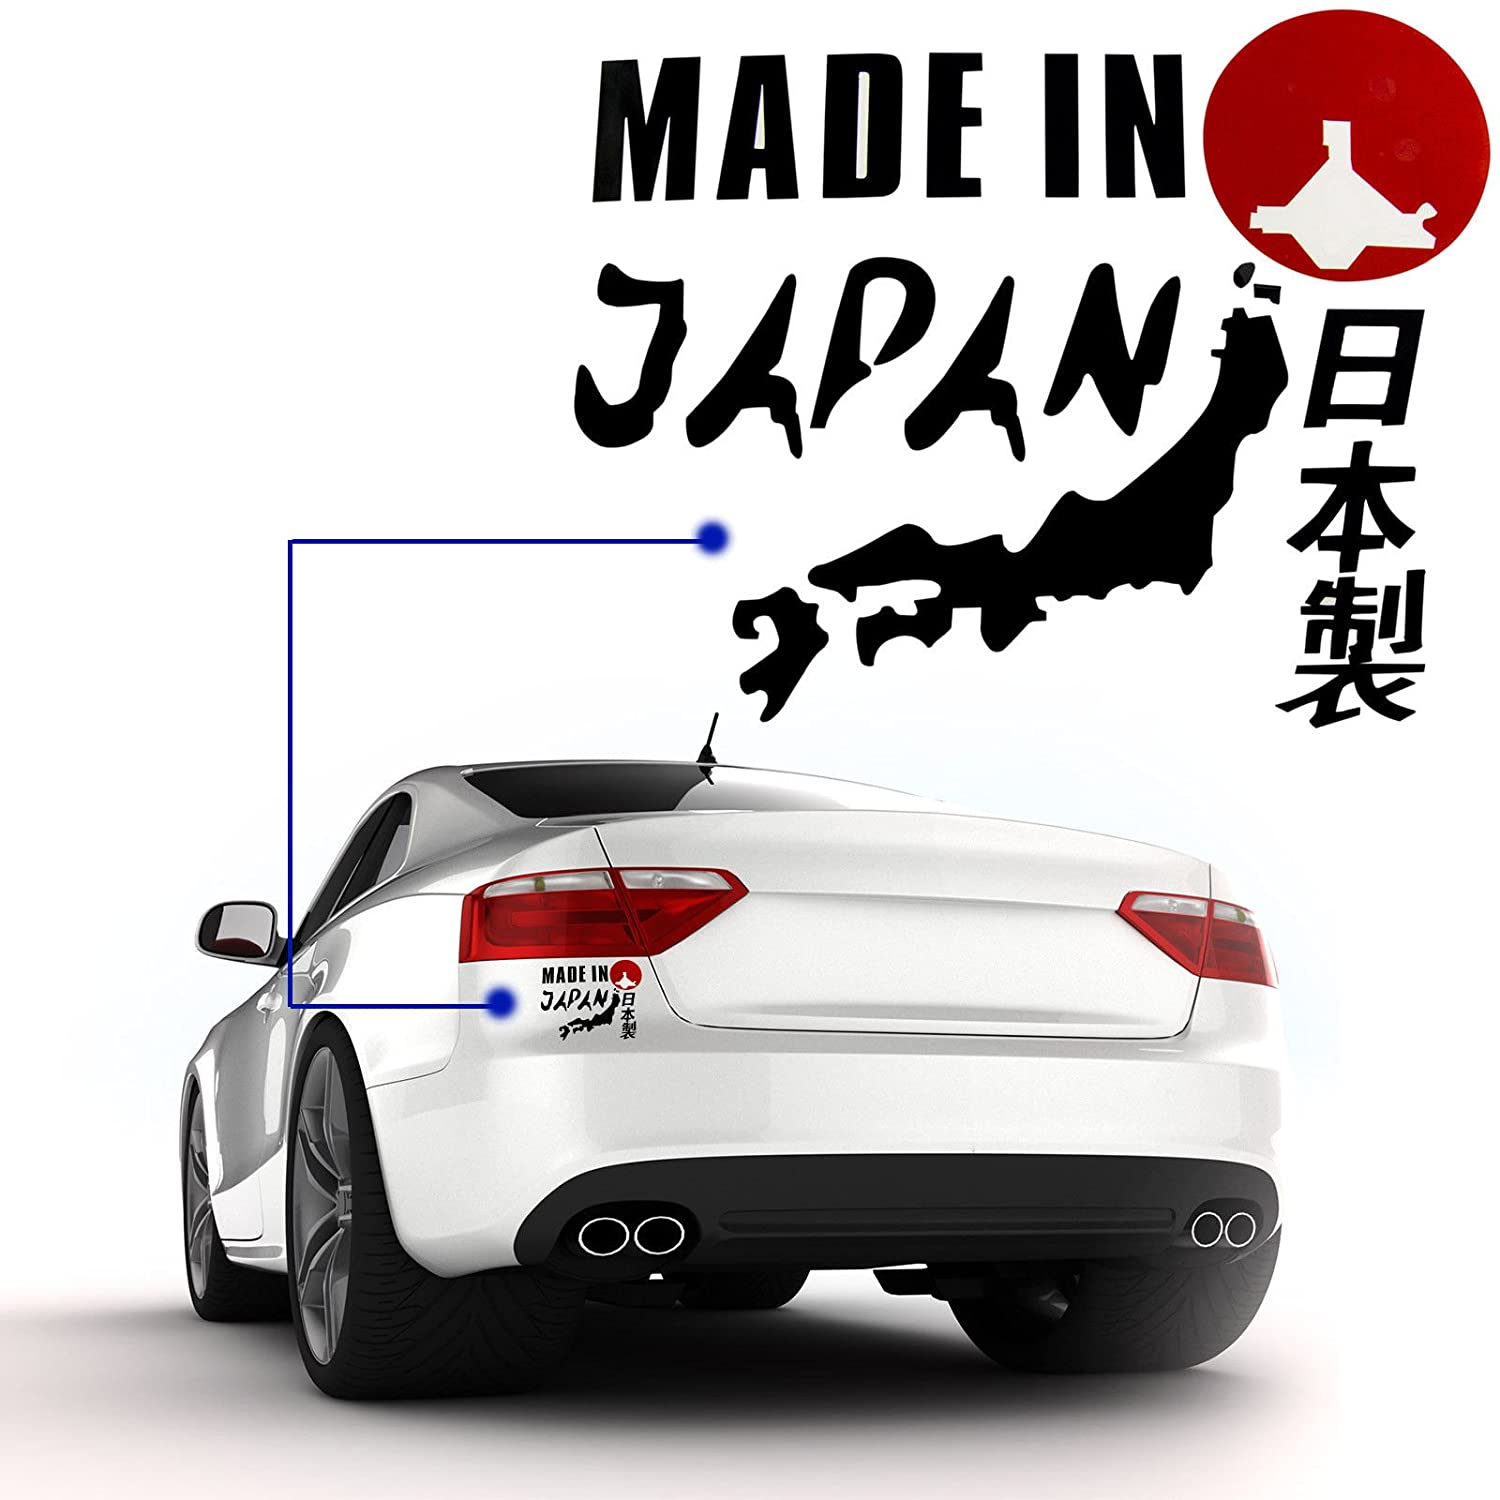 X xotic tech 1x made in japan rising sun kanji decal jdm japanese vinyl sticker black nippon map for automotive car laptop notebook funny cool decoration